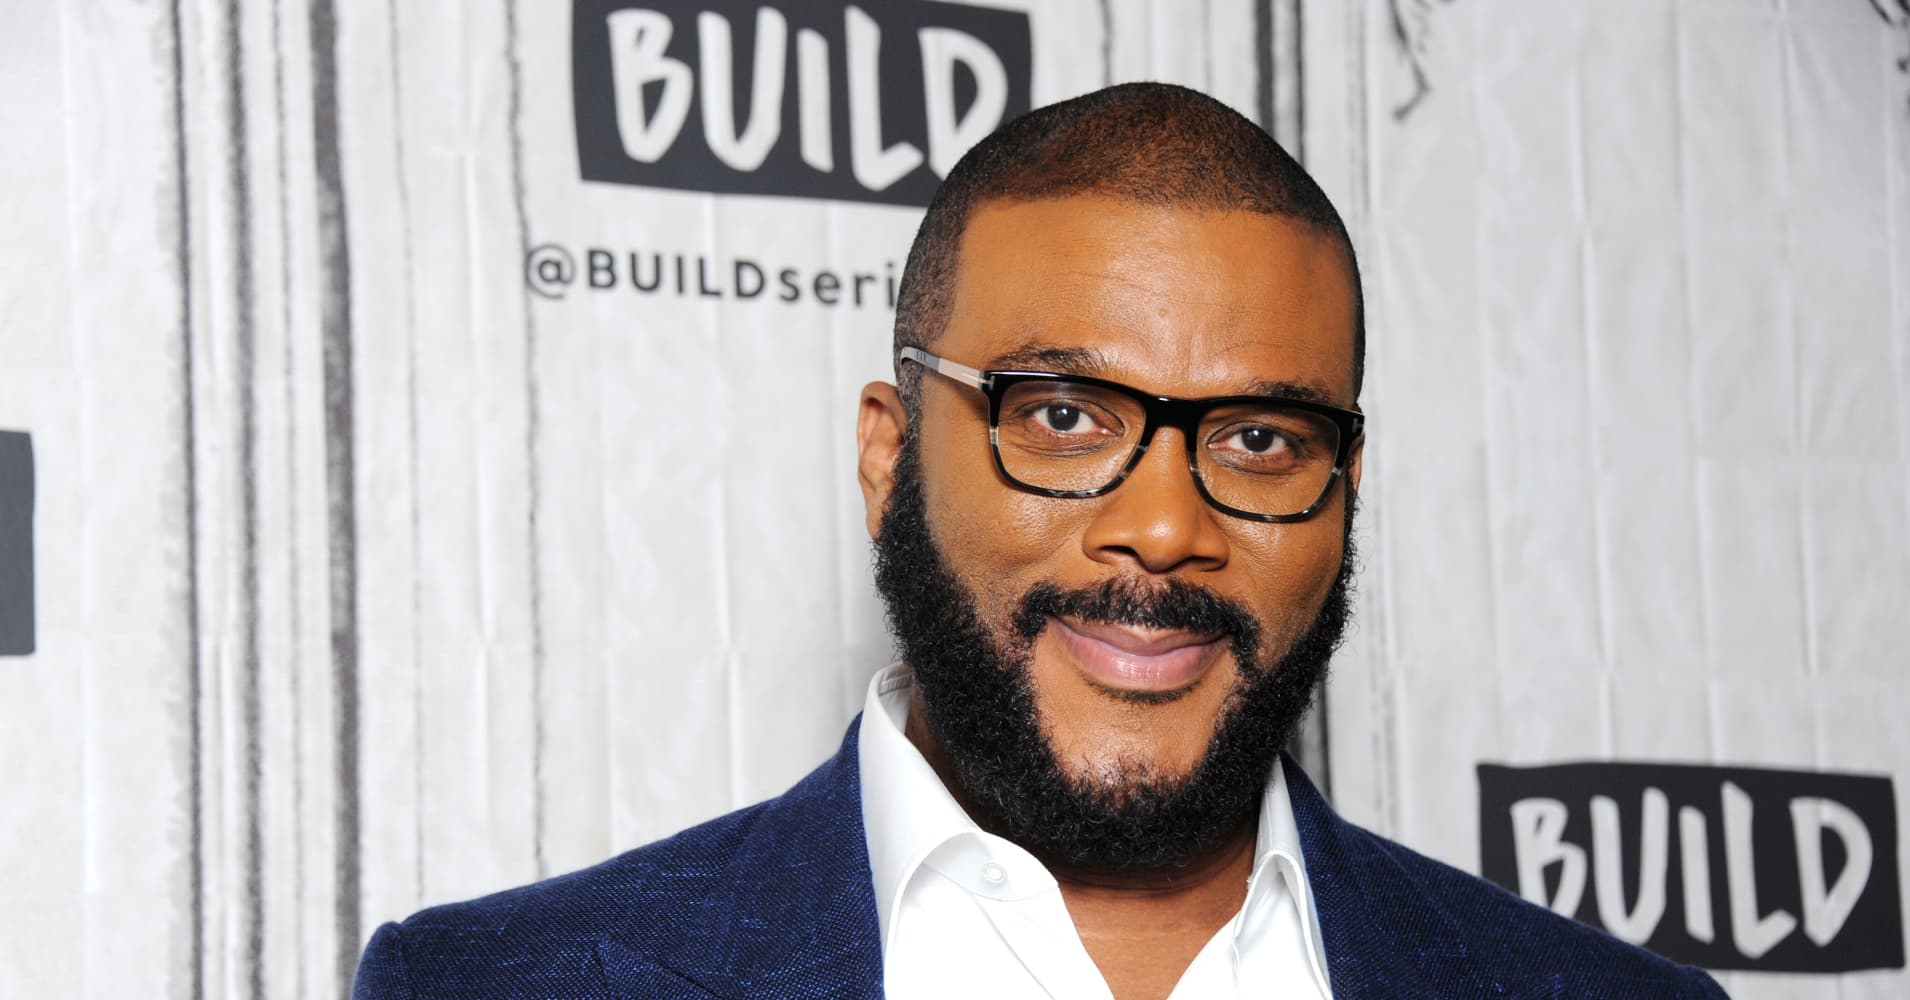 Director Producer And Actor Tyler Perry Attends Build Series To Discuss The Film Acrimony